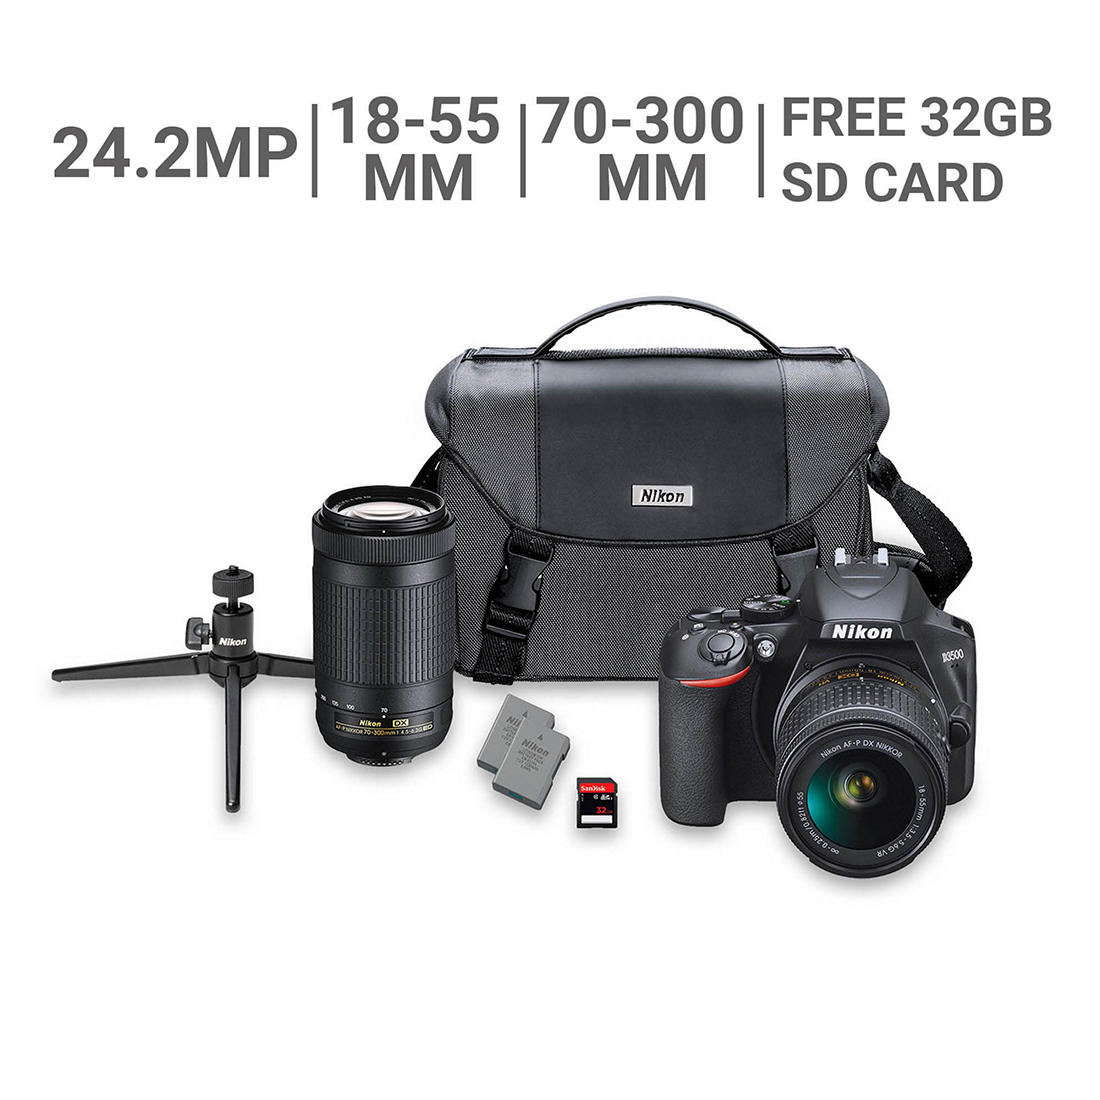 Nikon D3500 24 2MP CMOS DSLR Camera Bundle with 18-55mm VR and 70-300mm  Lenses, 32GB SD Card, Bag